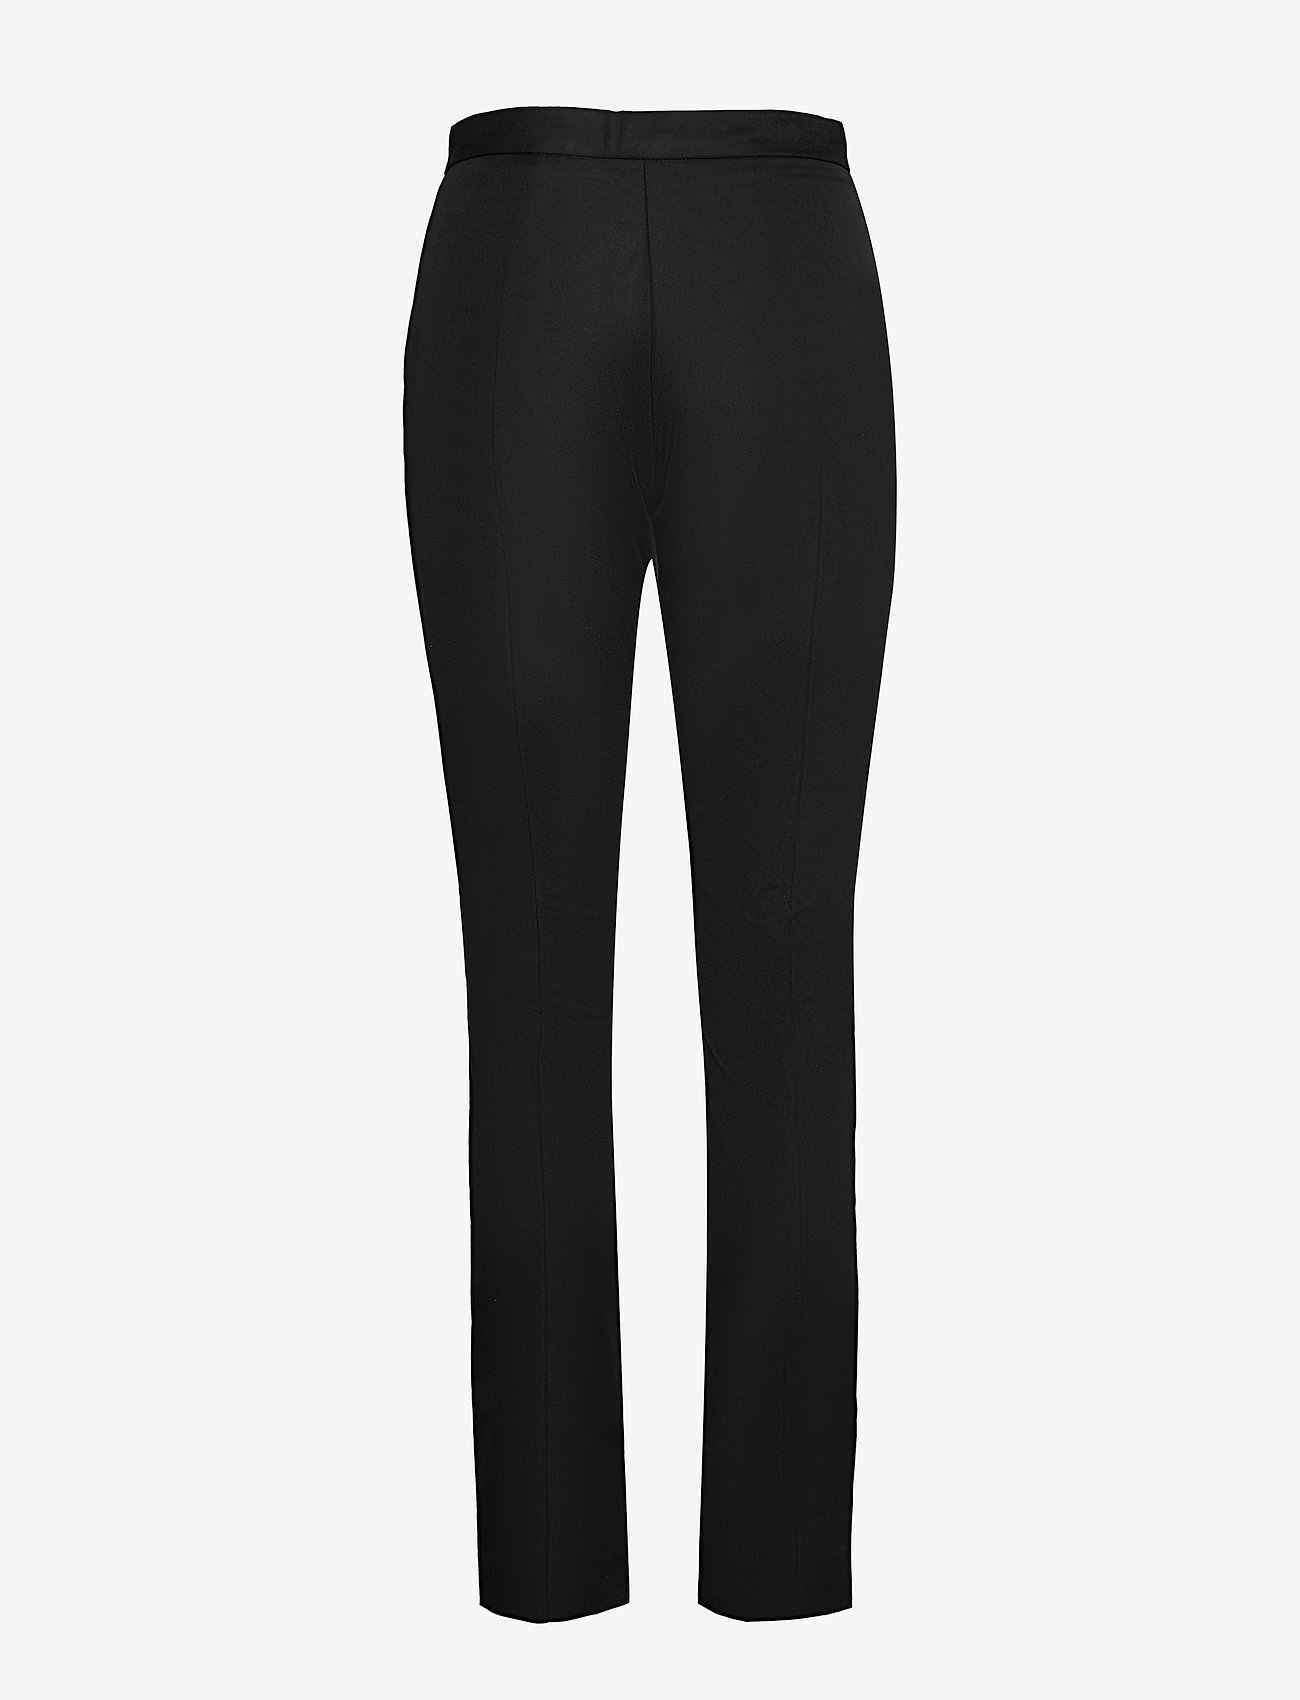 2NDDAY - 2ND Tripping - slim fit trousers - black - 1